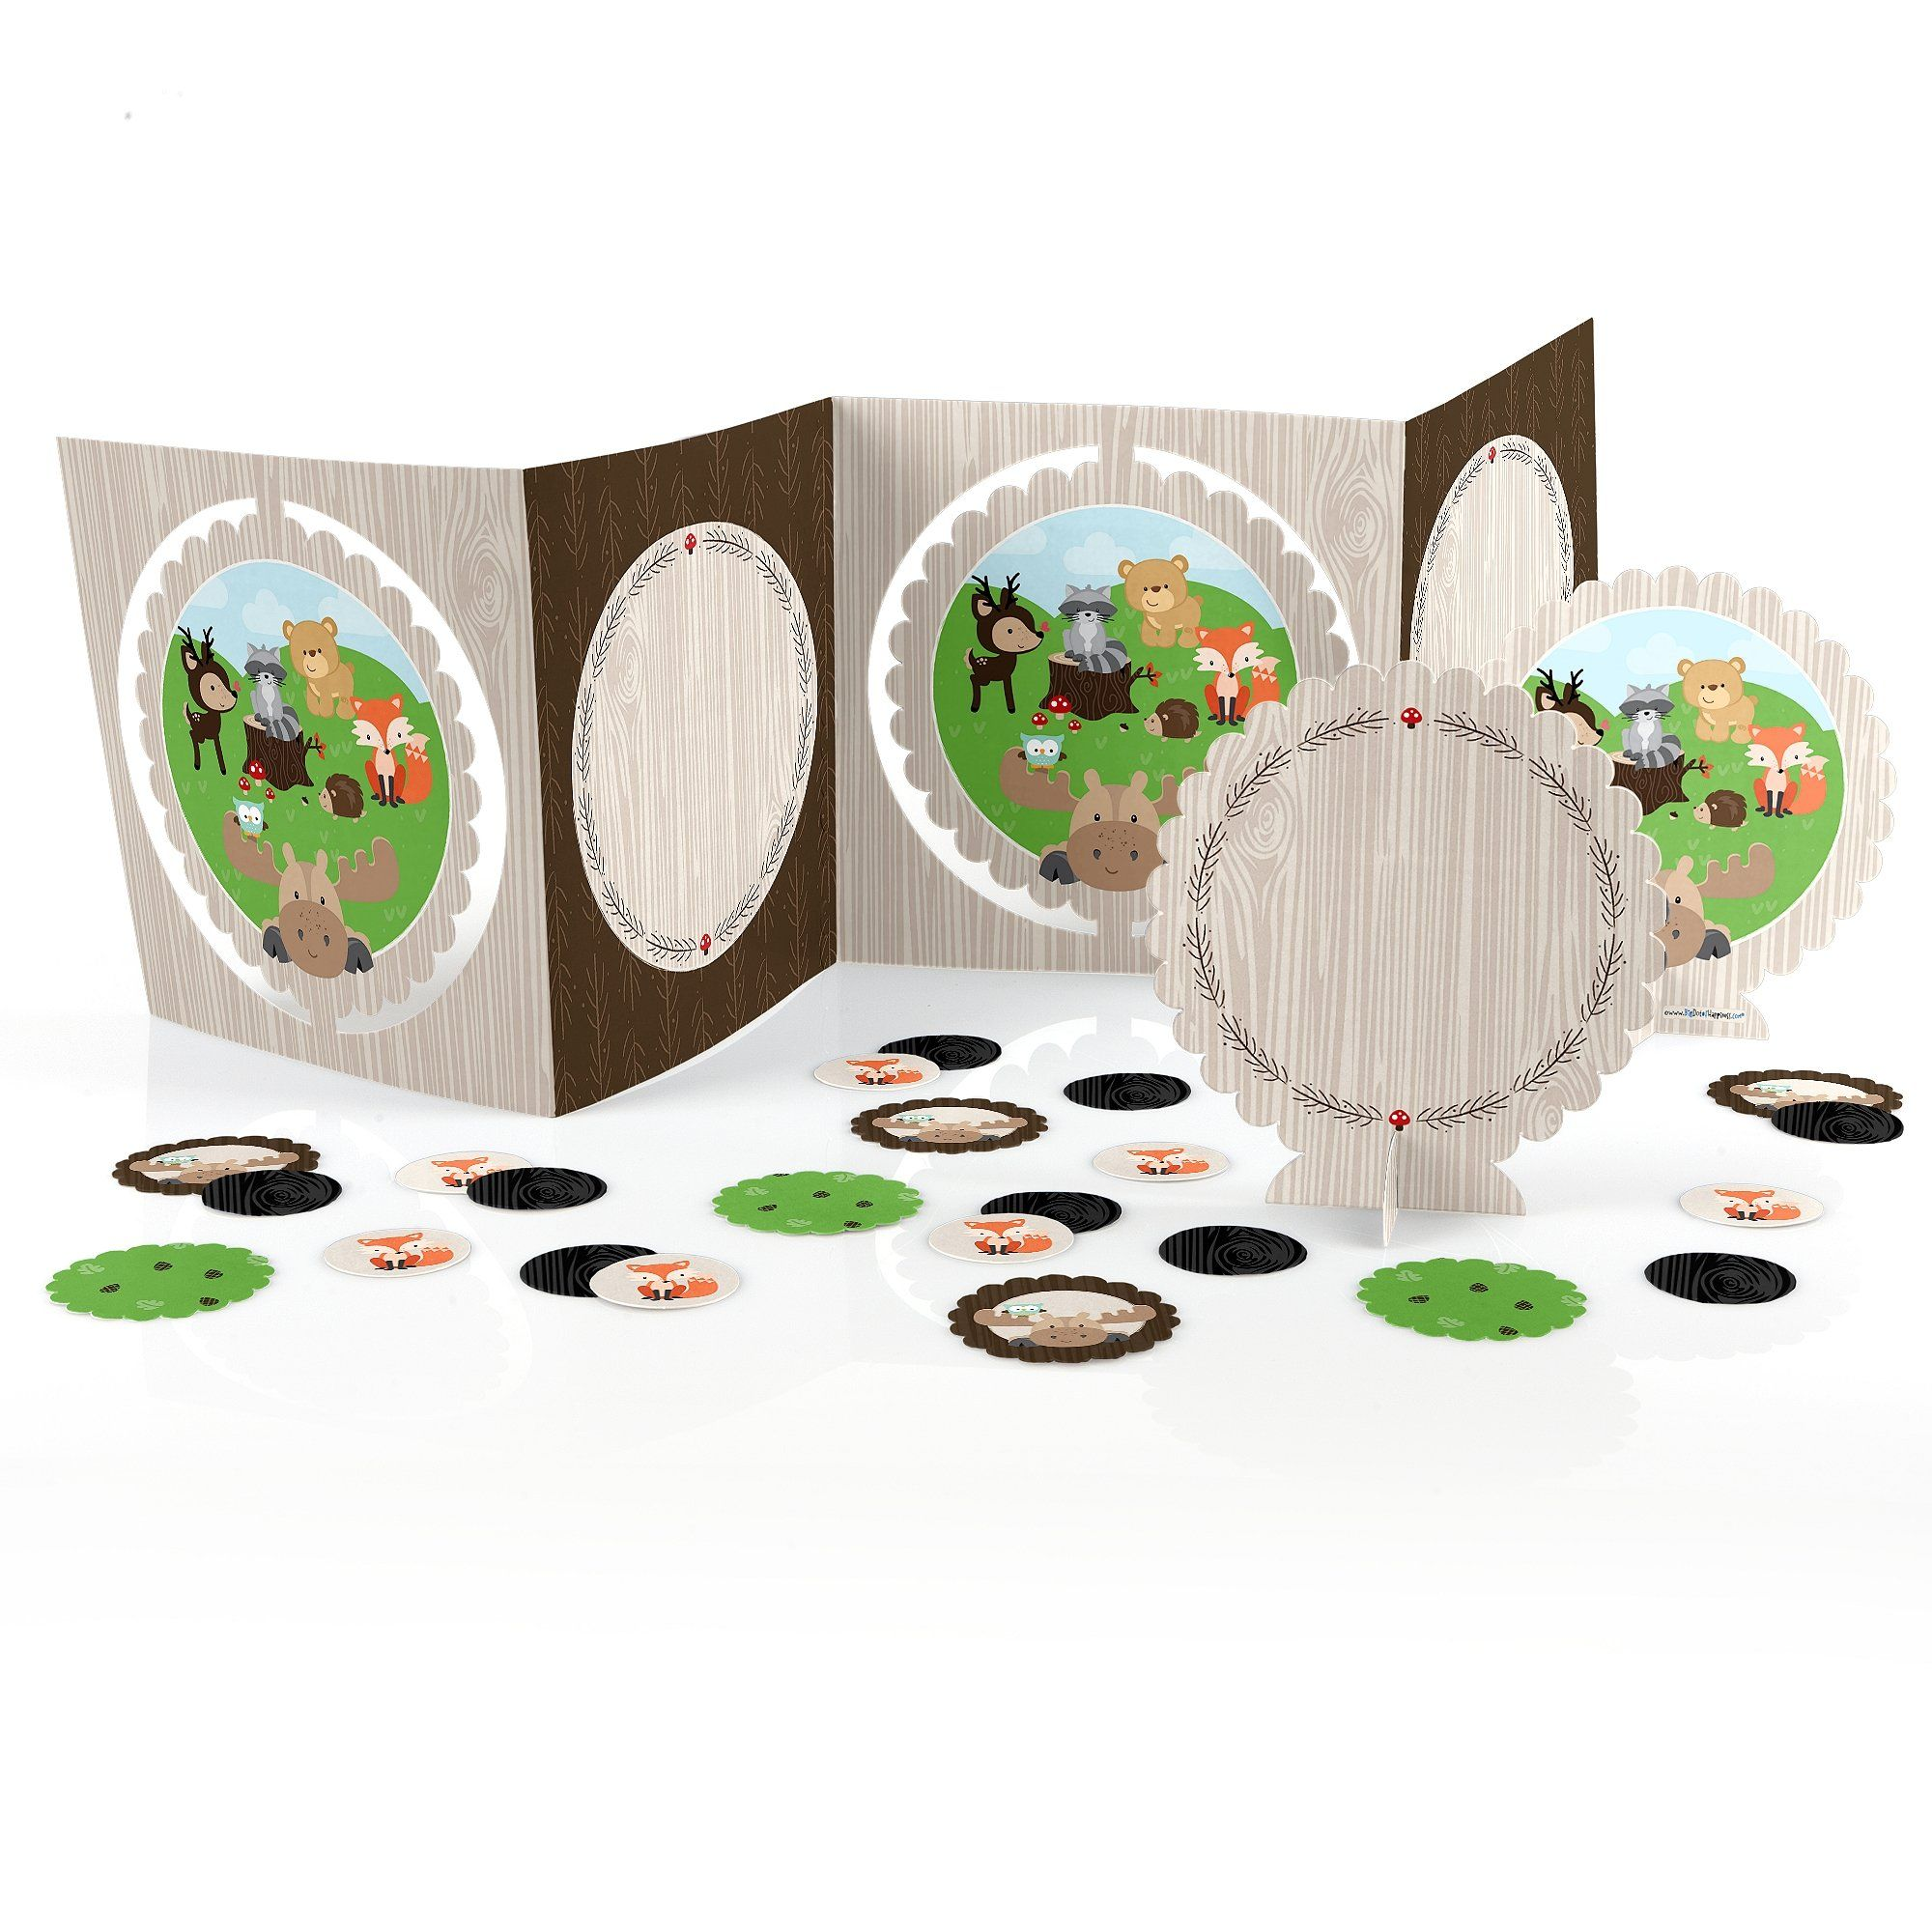 Amazon.com: Woodland Creatures - Party Table Decorating Kit - 27 Count - $19